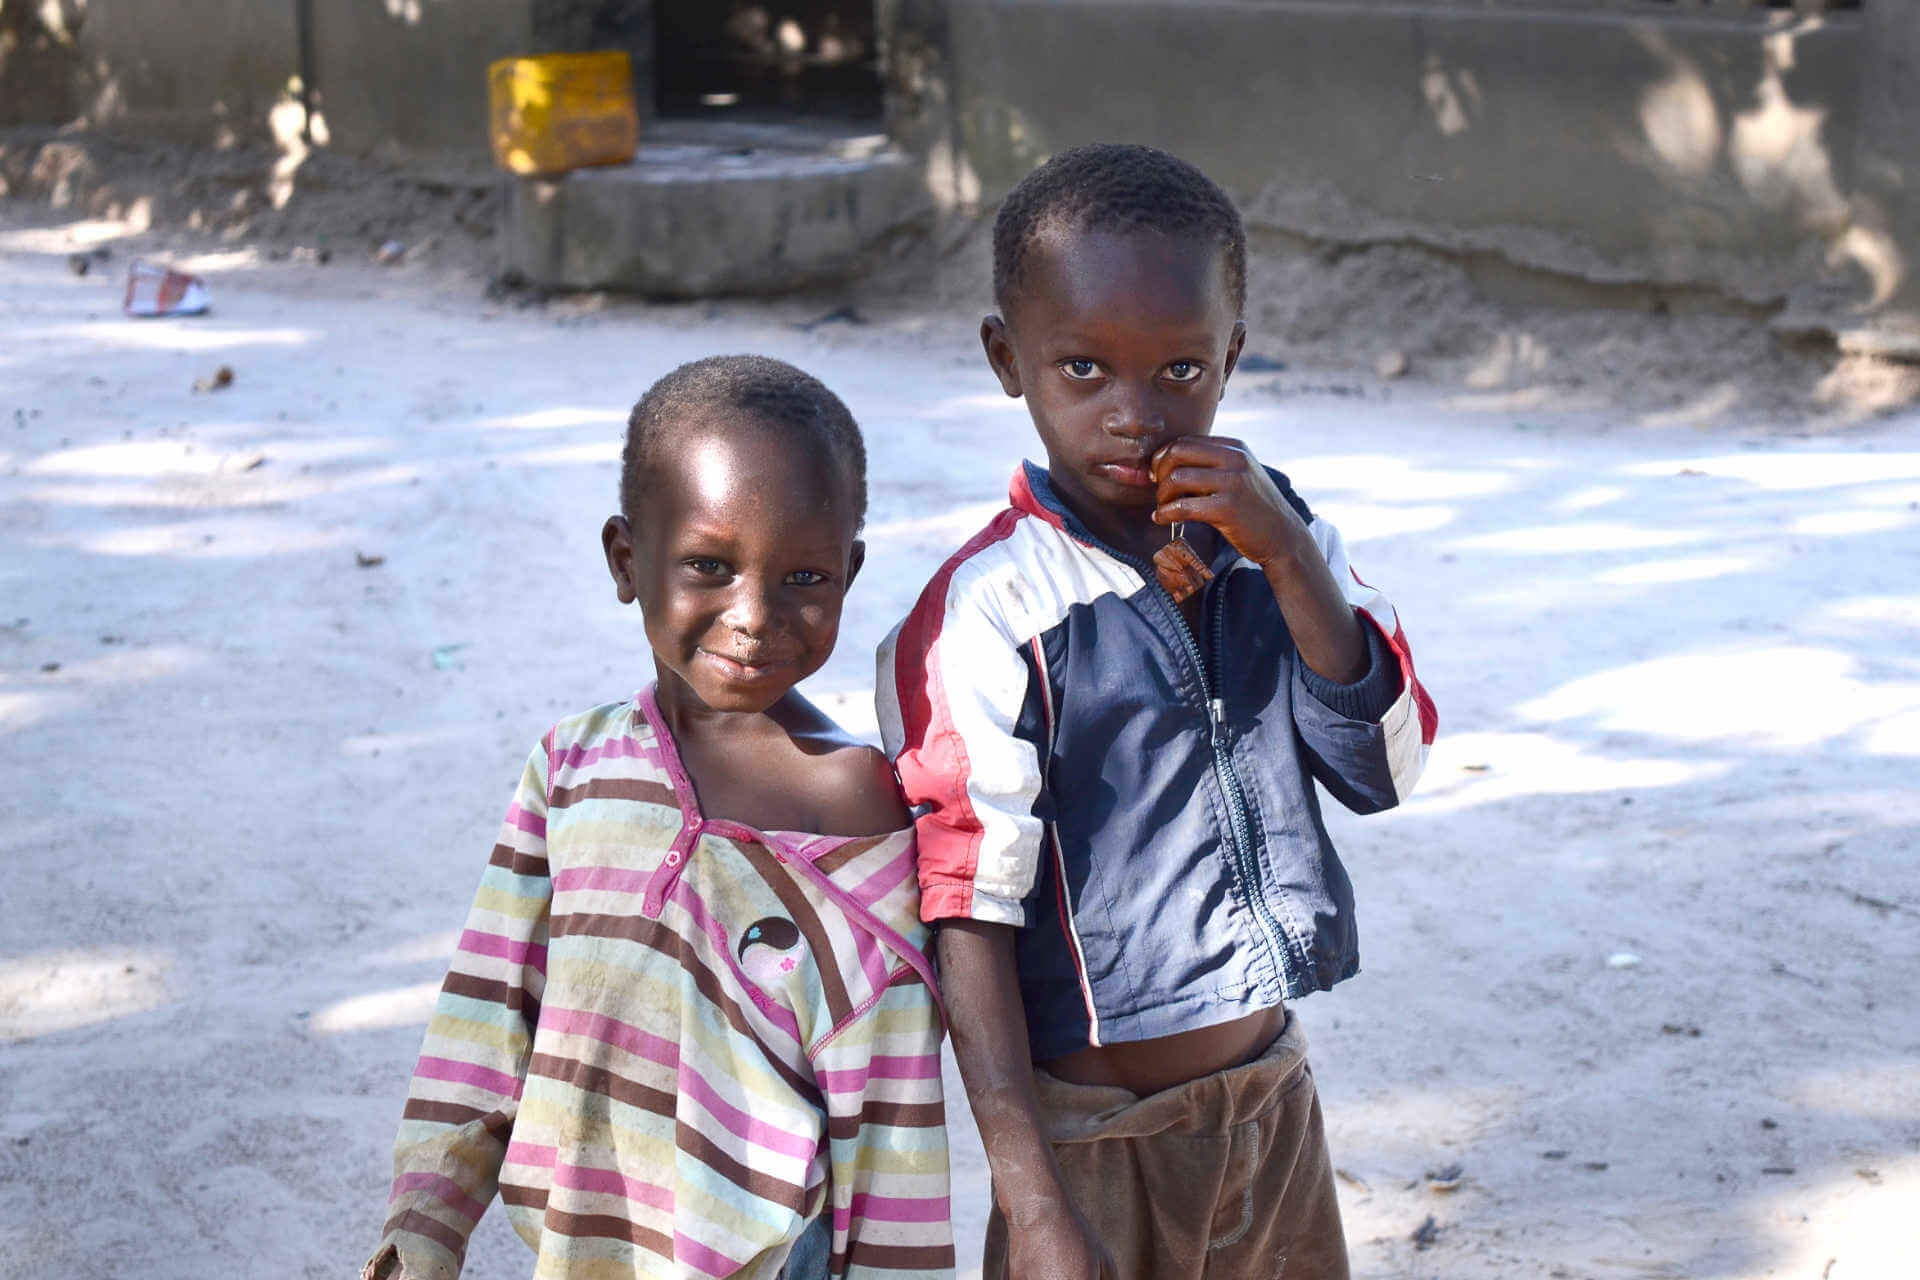 Gambia photos competition | 2016 Winner Daisy O'Neill